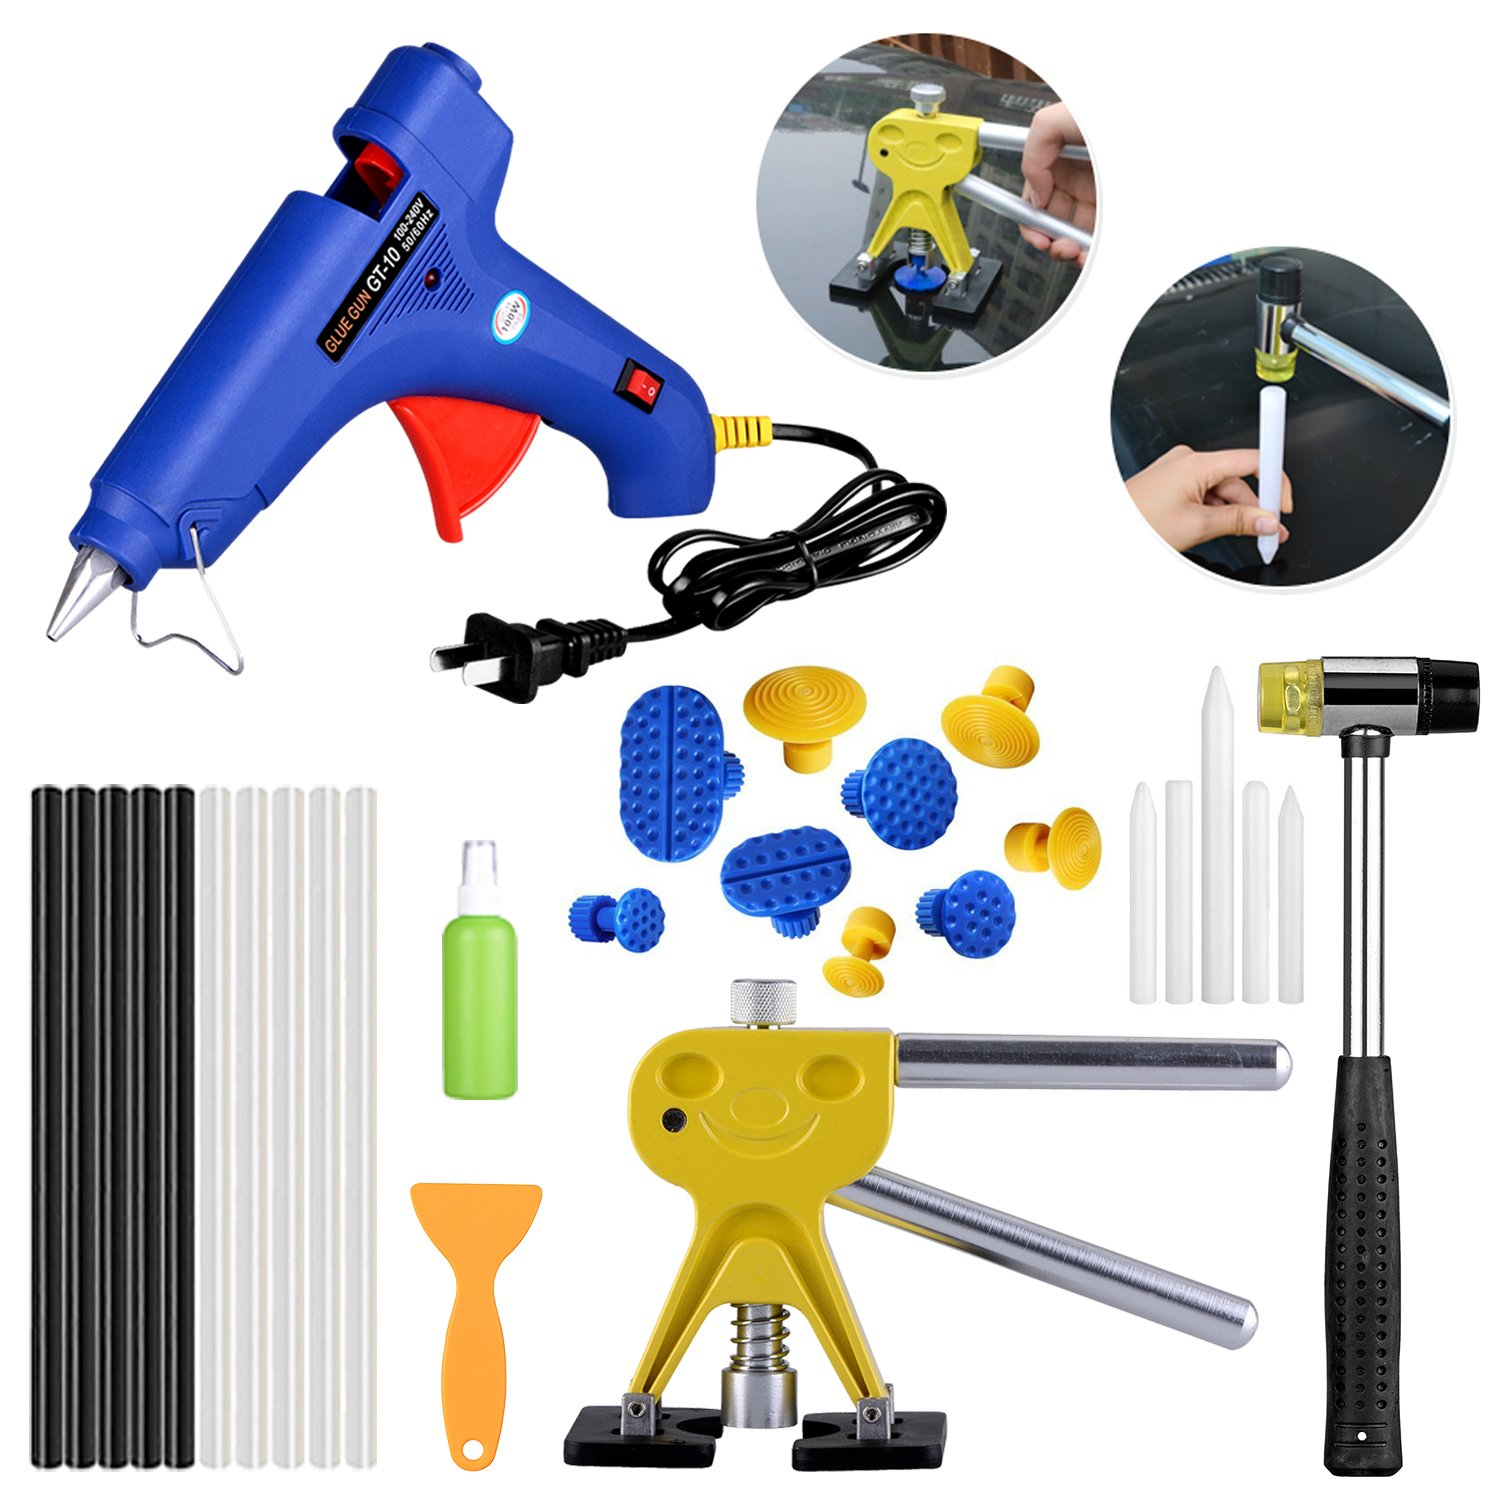 AUTOPDR 29Pcs DIY Pops a Dent PDR Tool Kit Dent Repair Tools Car Dent Remover Paintless Dent Removal Kit Suction Cup Dent Puller with Hot Melt Glue Gun Sticks